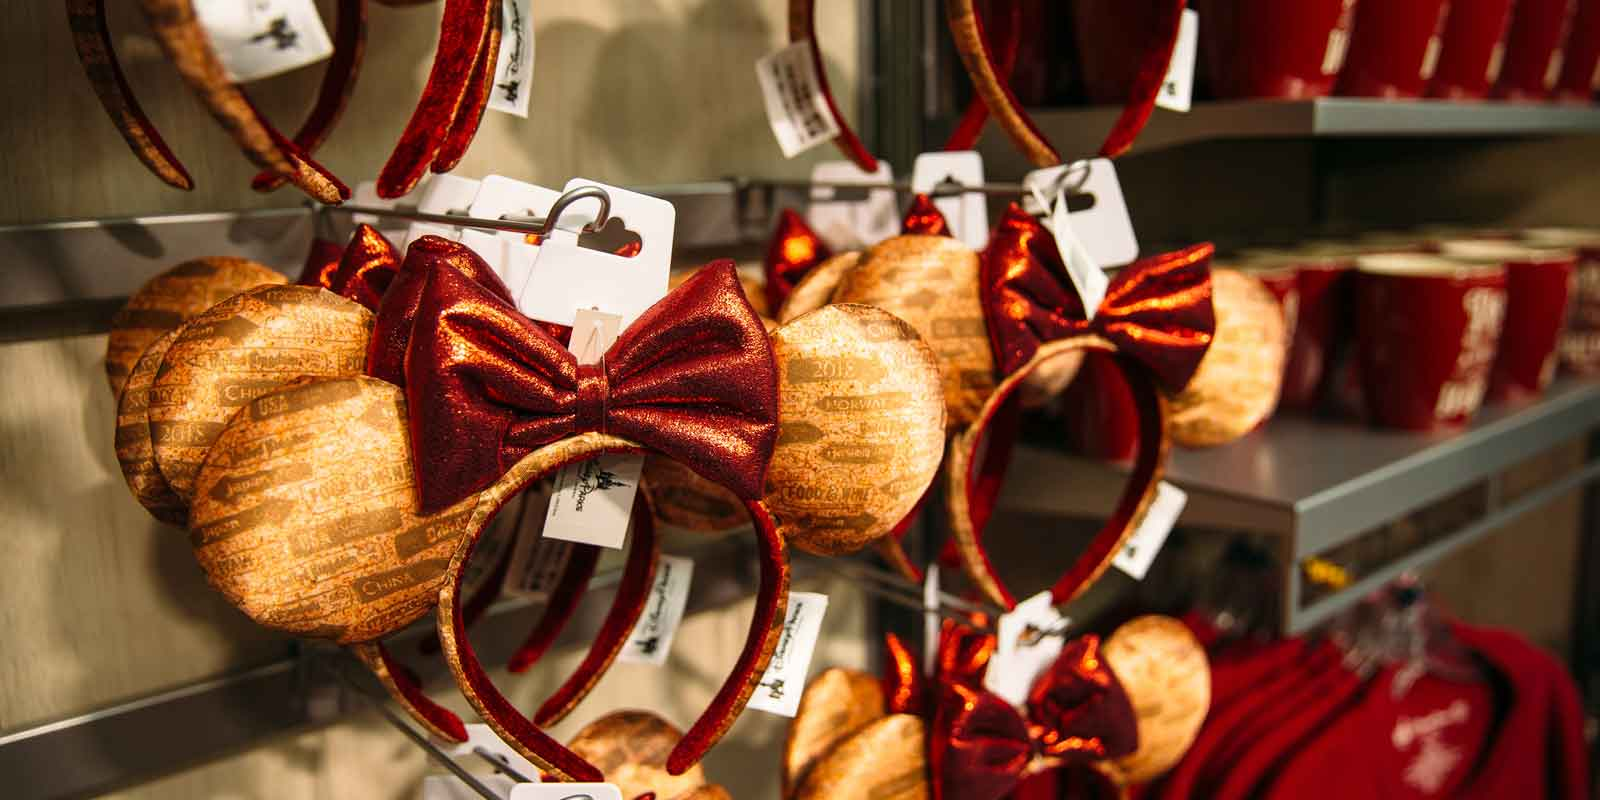 Closeup of rows of Minnie Mouse ears, mugs, and other Epcot Food & Wine Festival merchandise